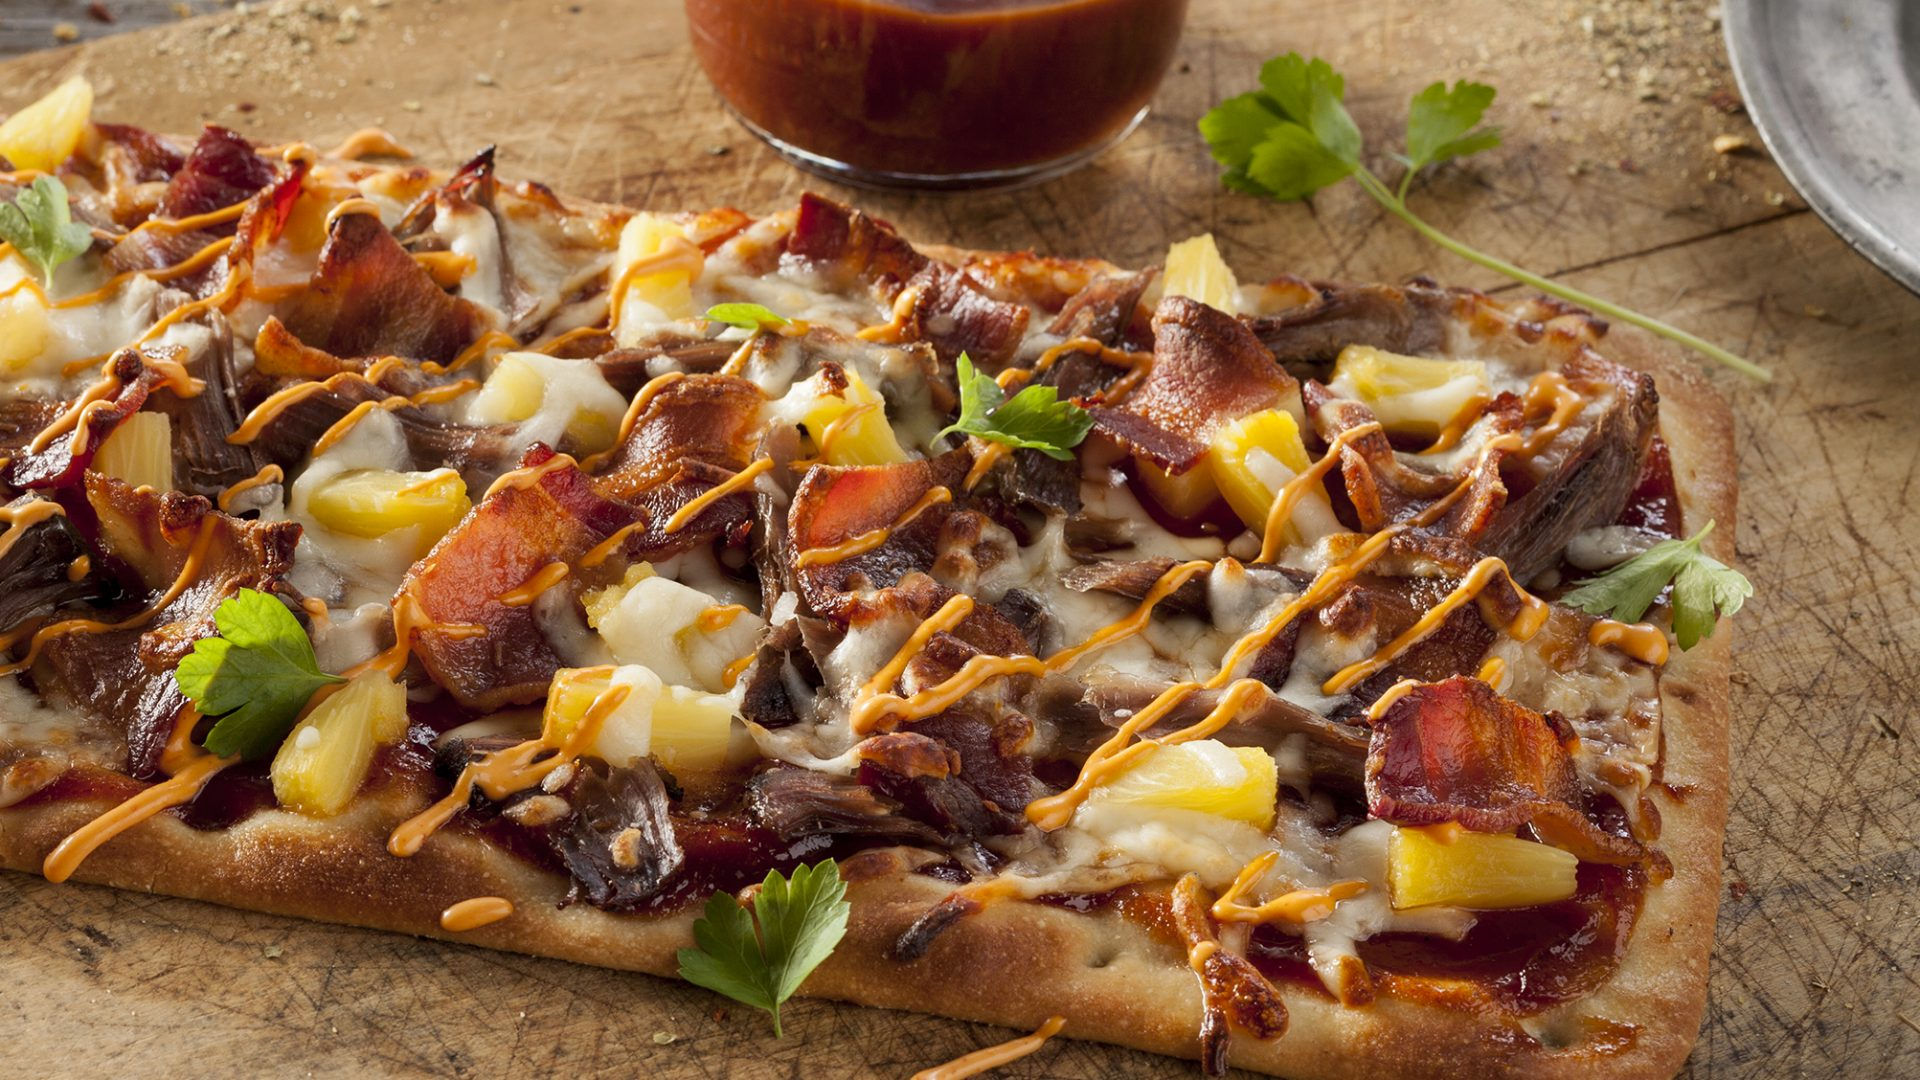 Now You Can Enjoy Perfectly Baked Flatbreads At Home Simply Delicious And So Versatile Theyll Inspire Your Own Culinary Creations